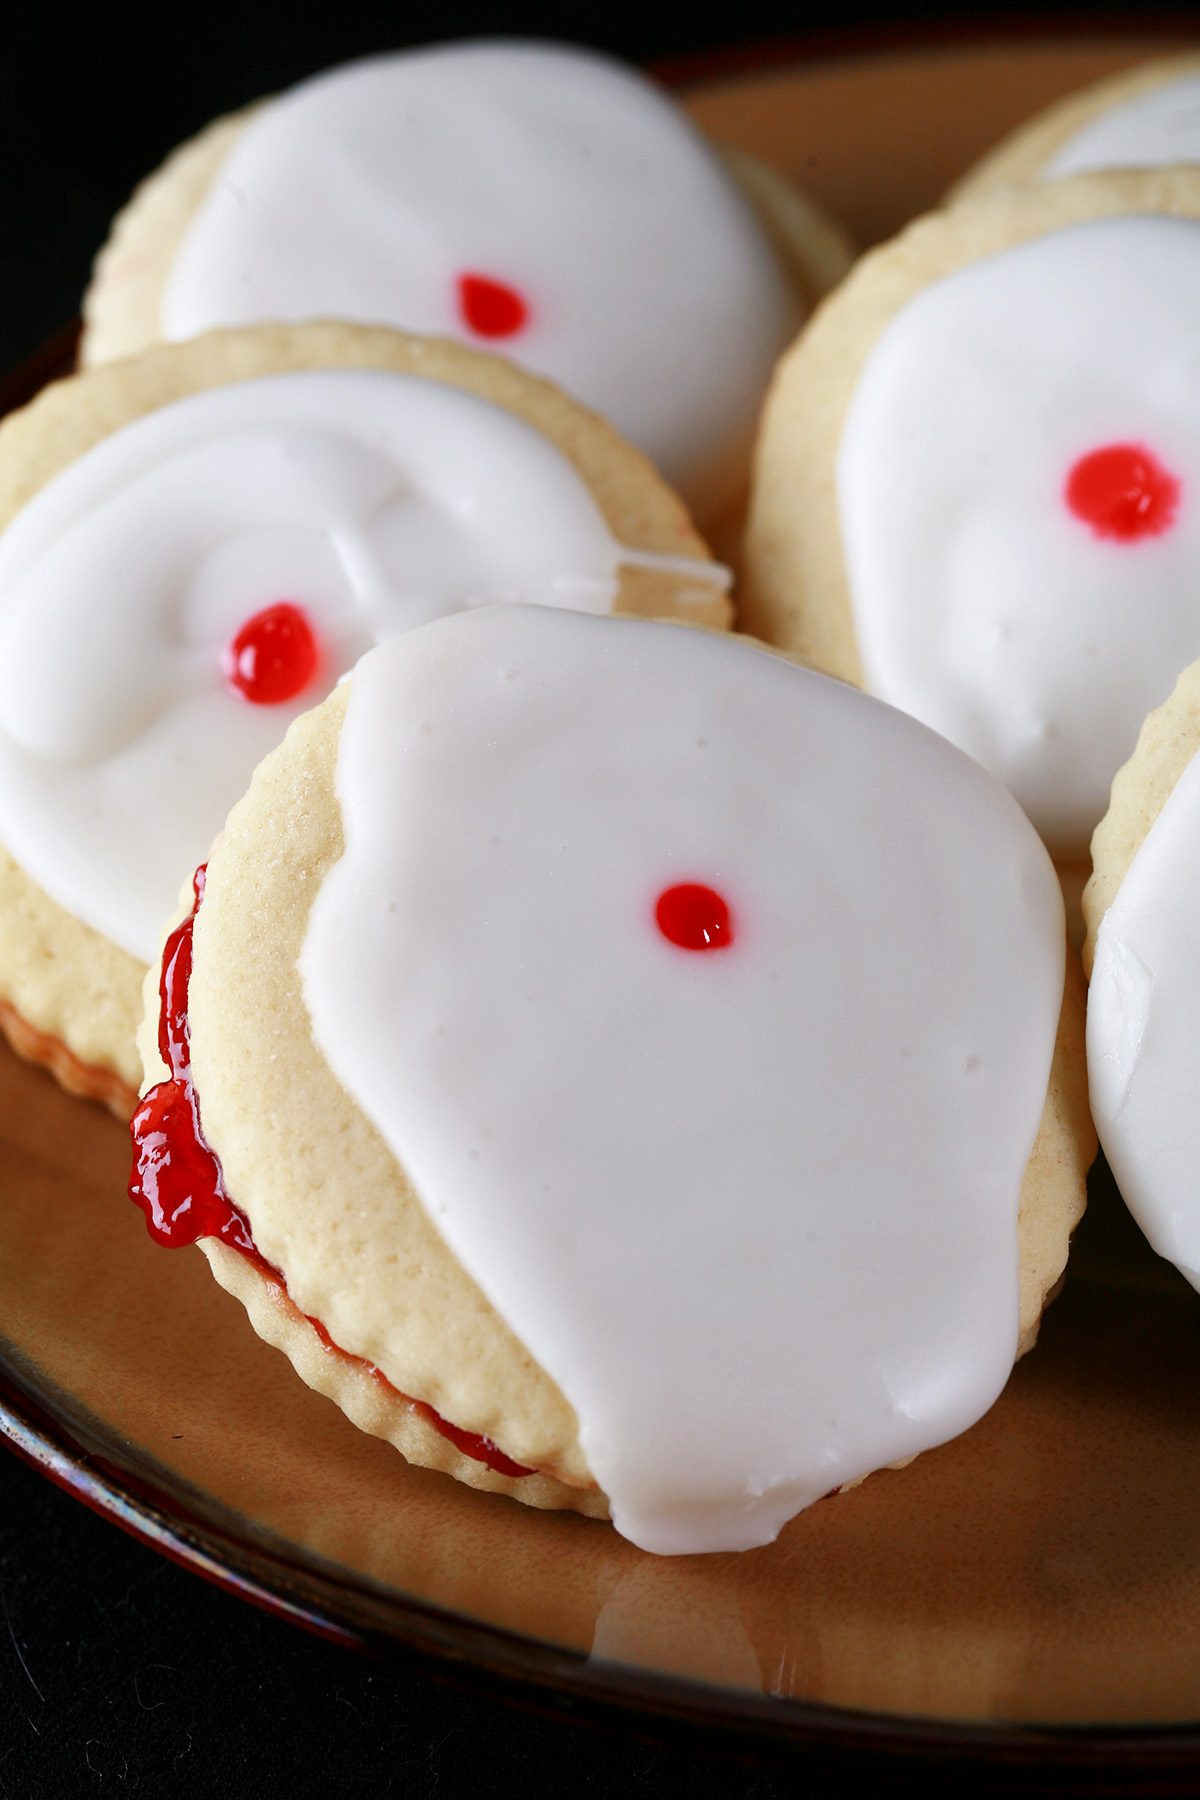 Close up view of a plate of Gluten-Free Empire Cookies - sandwich cookies filled with raspberry jam, frosted with a white glaze, and finished off with a dot of red gel in the center.